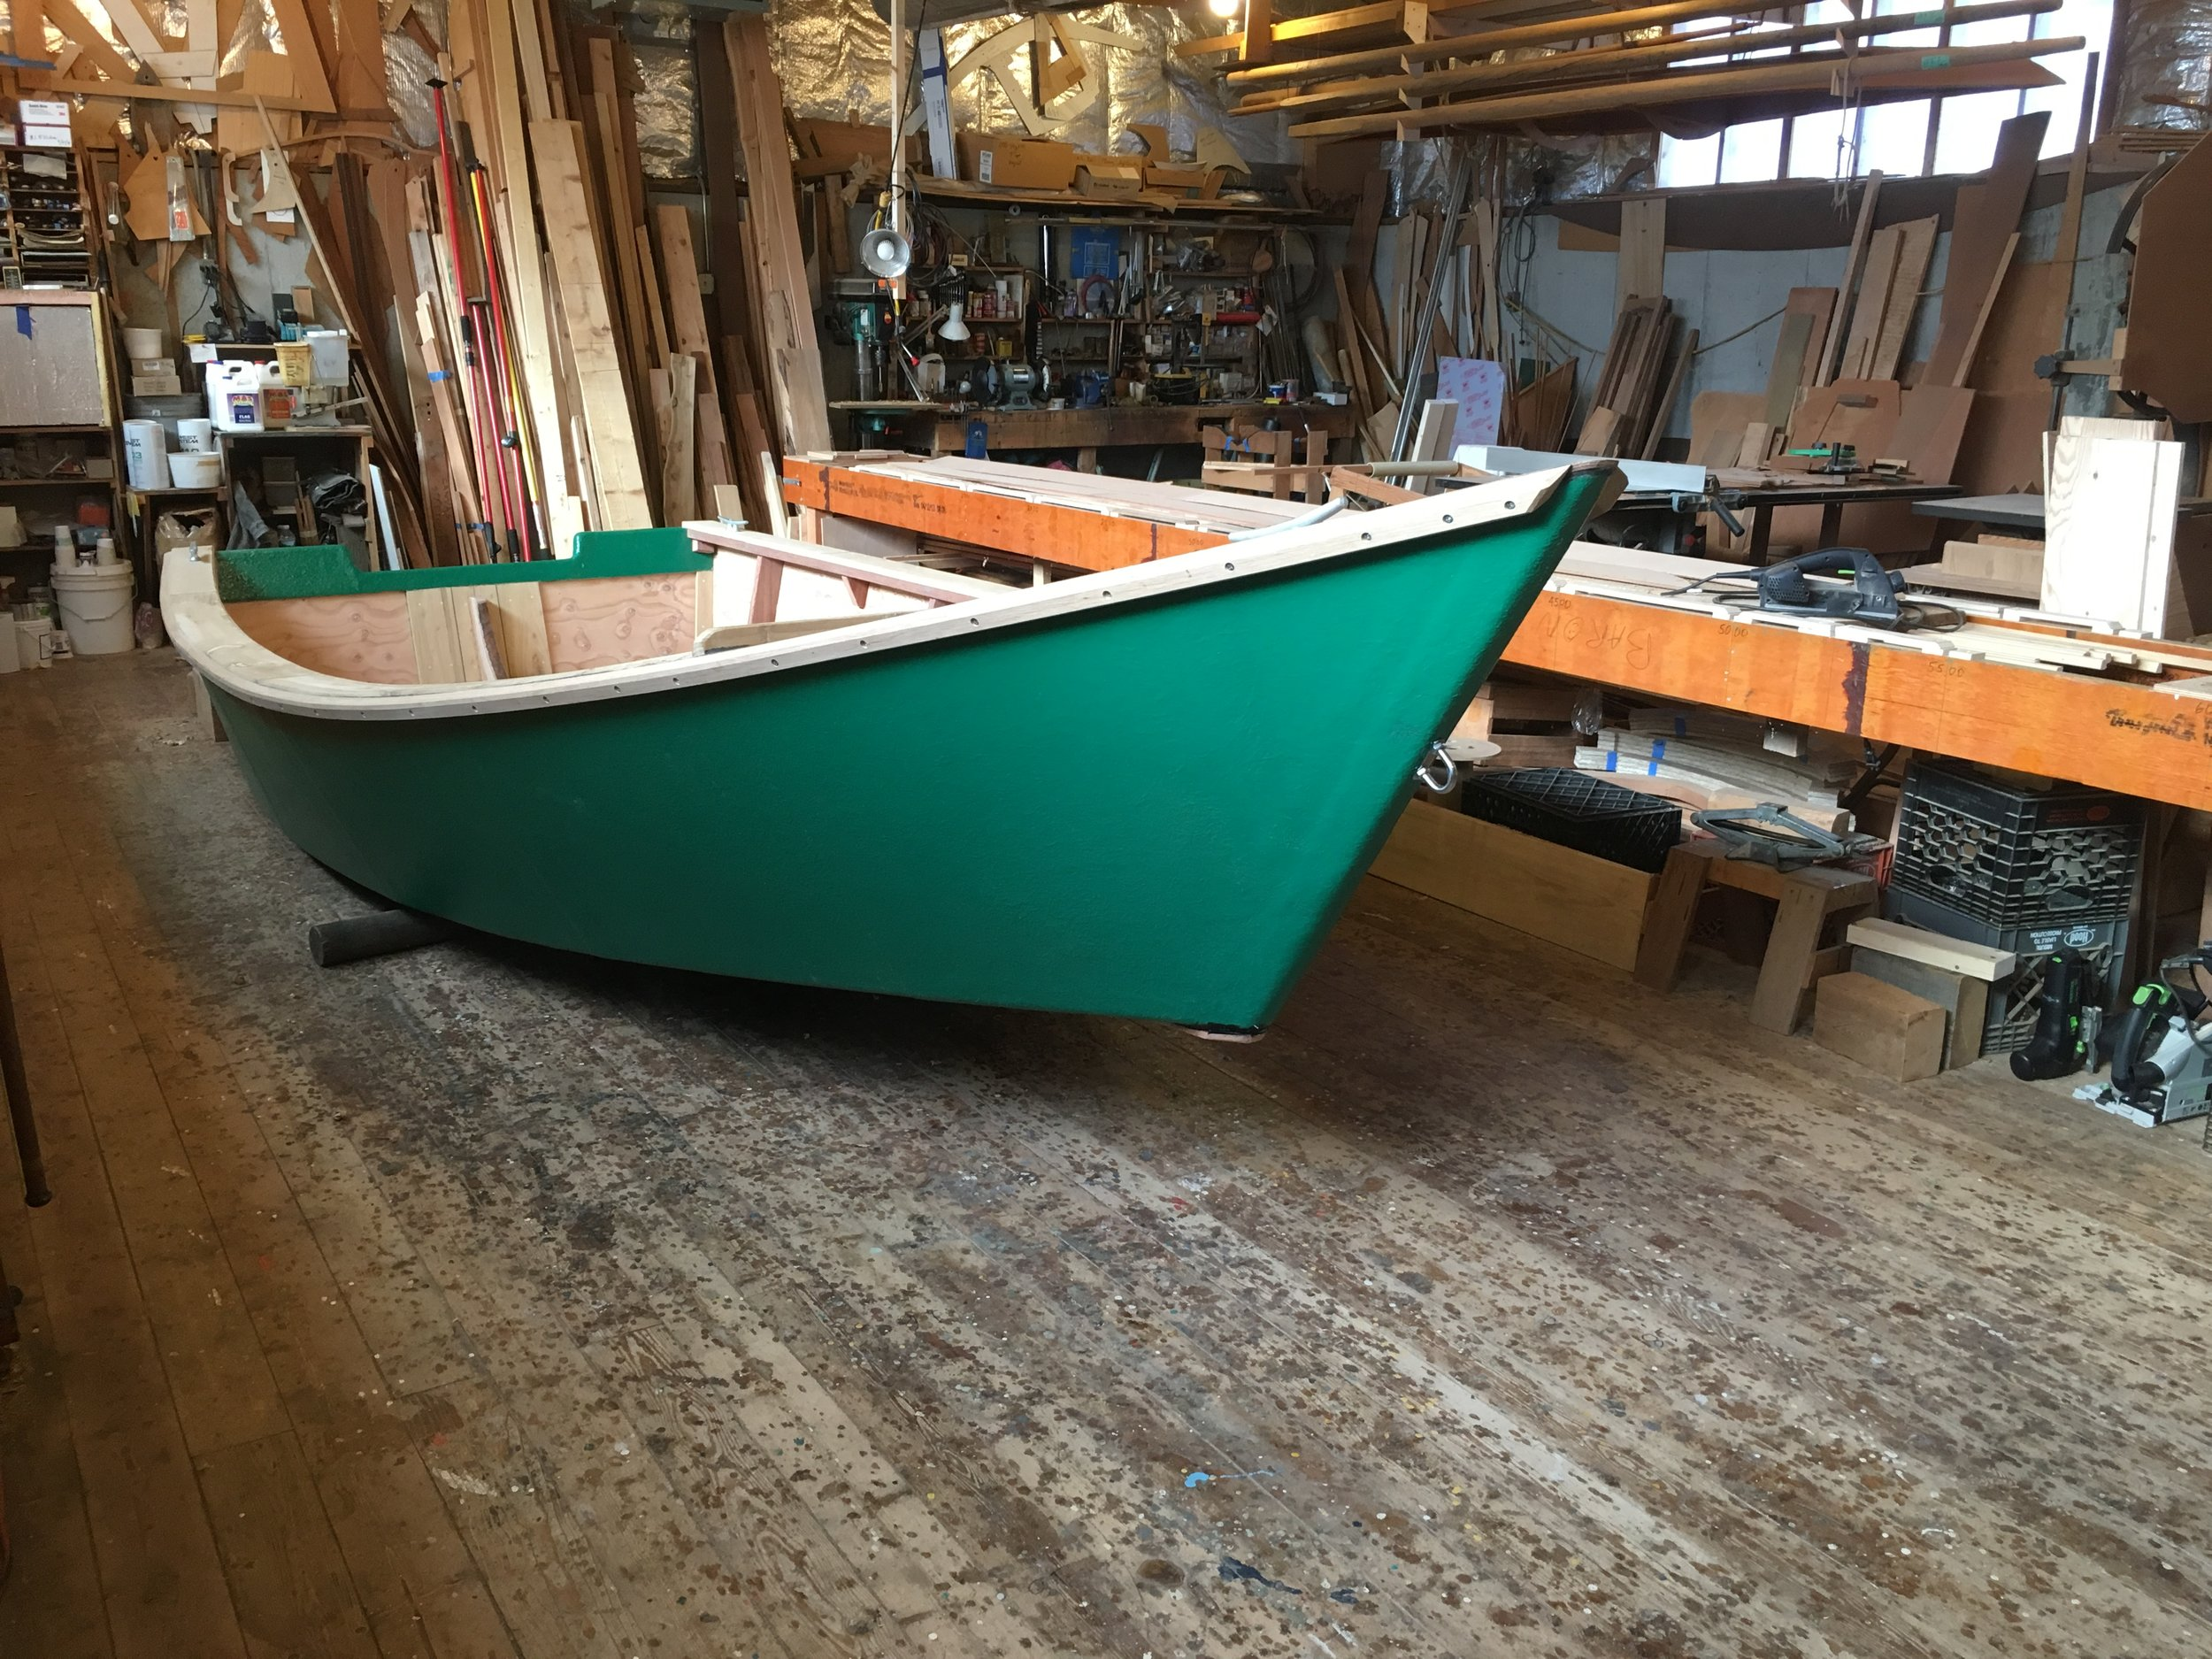 18' Work Skiff, on the rollers and ready to go out the door.